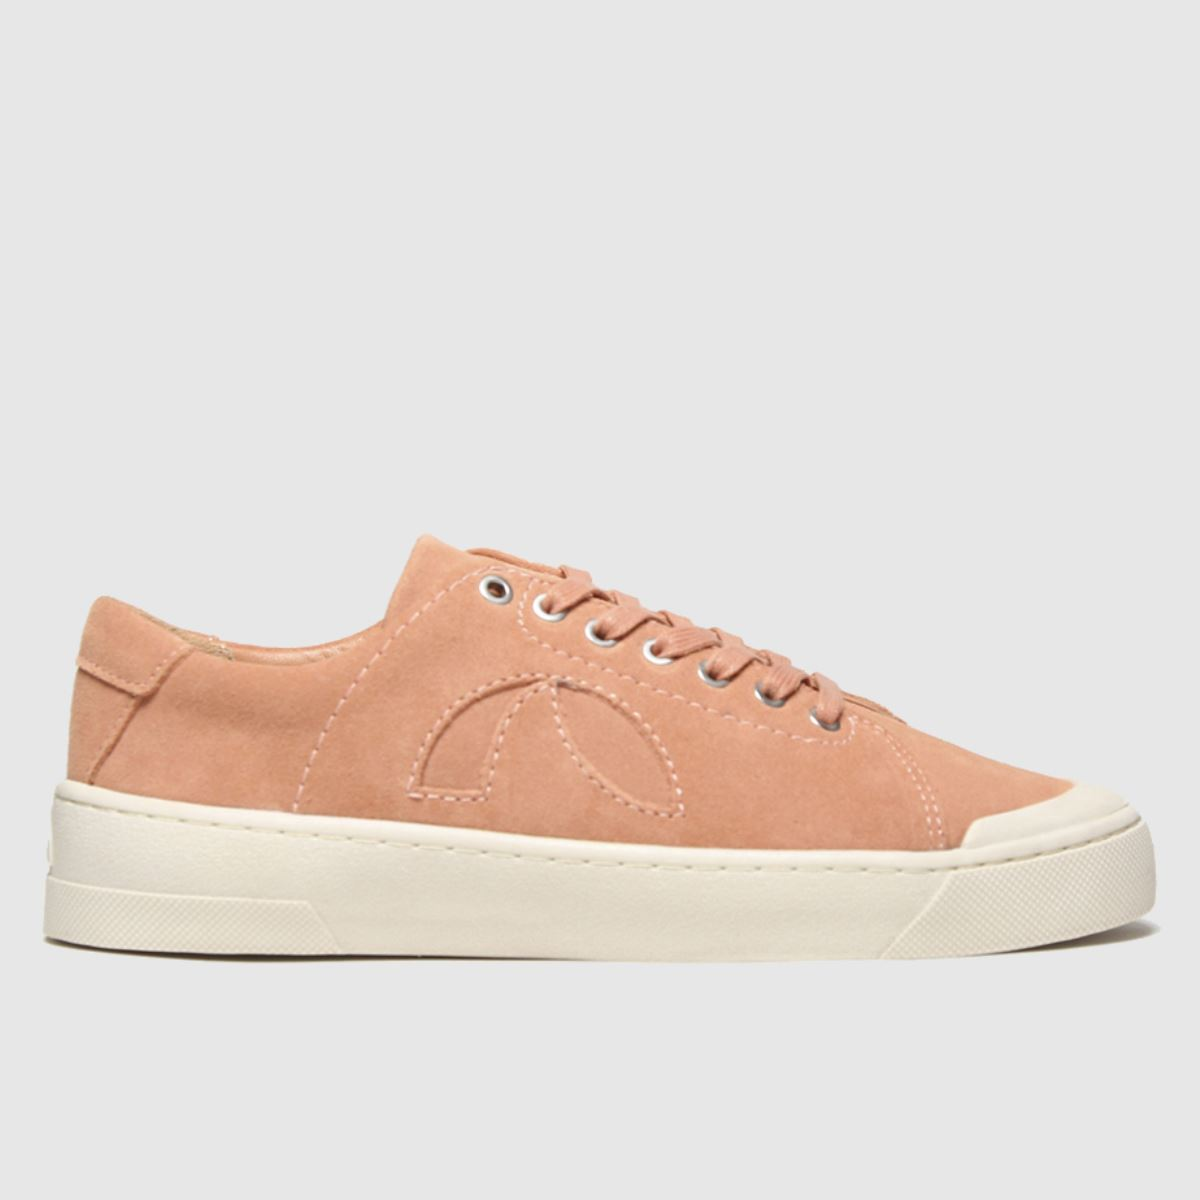 Roscomar Peach Blvd Suede Trainers